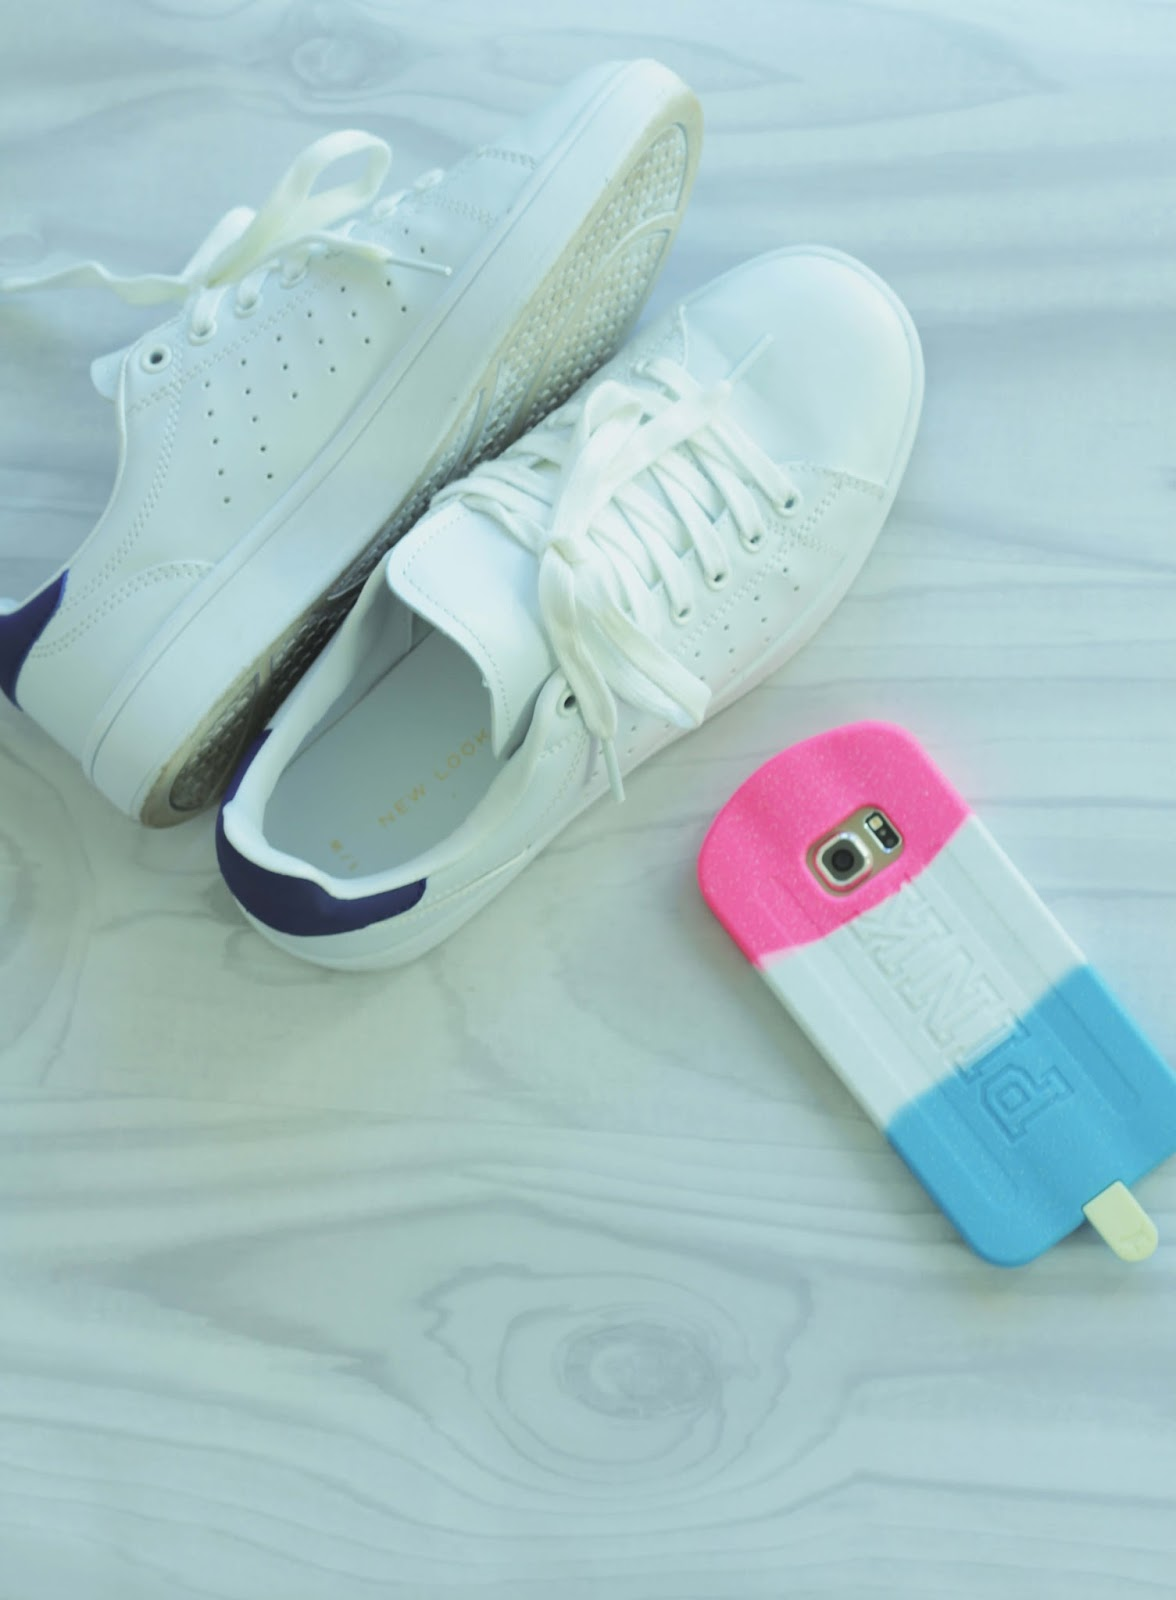 stan smith new look dupes ice cream phone case